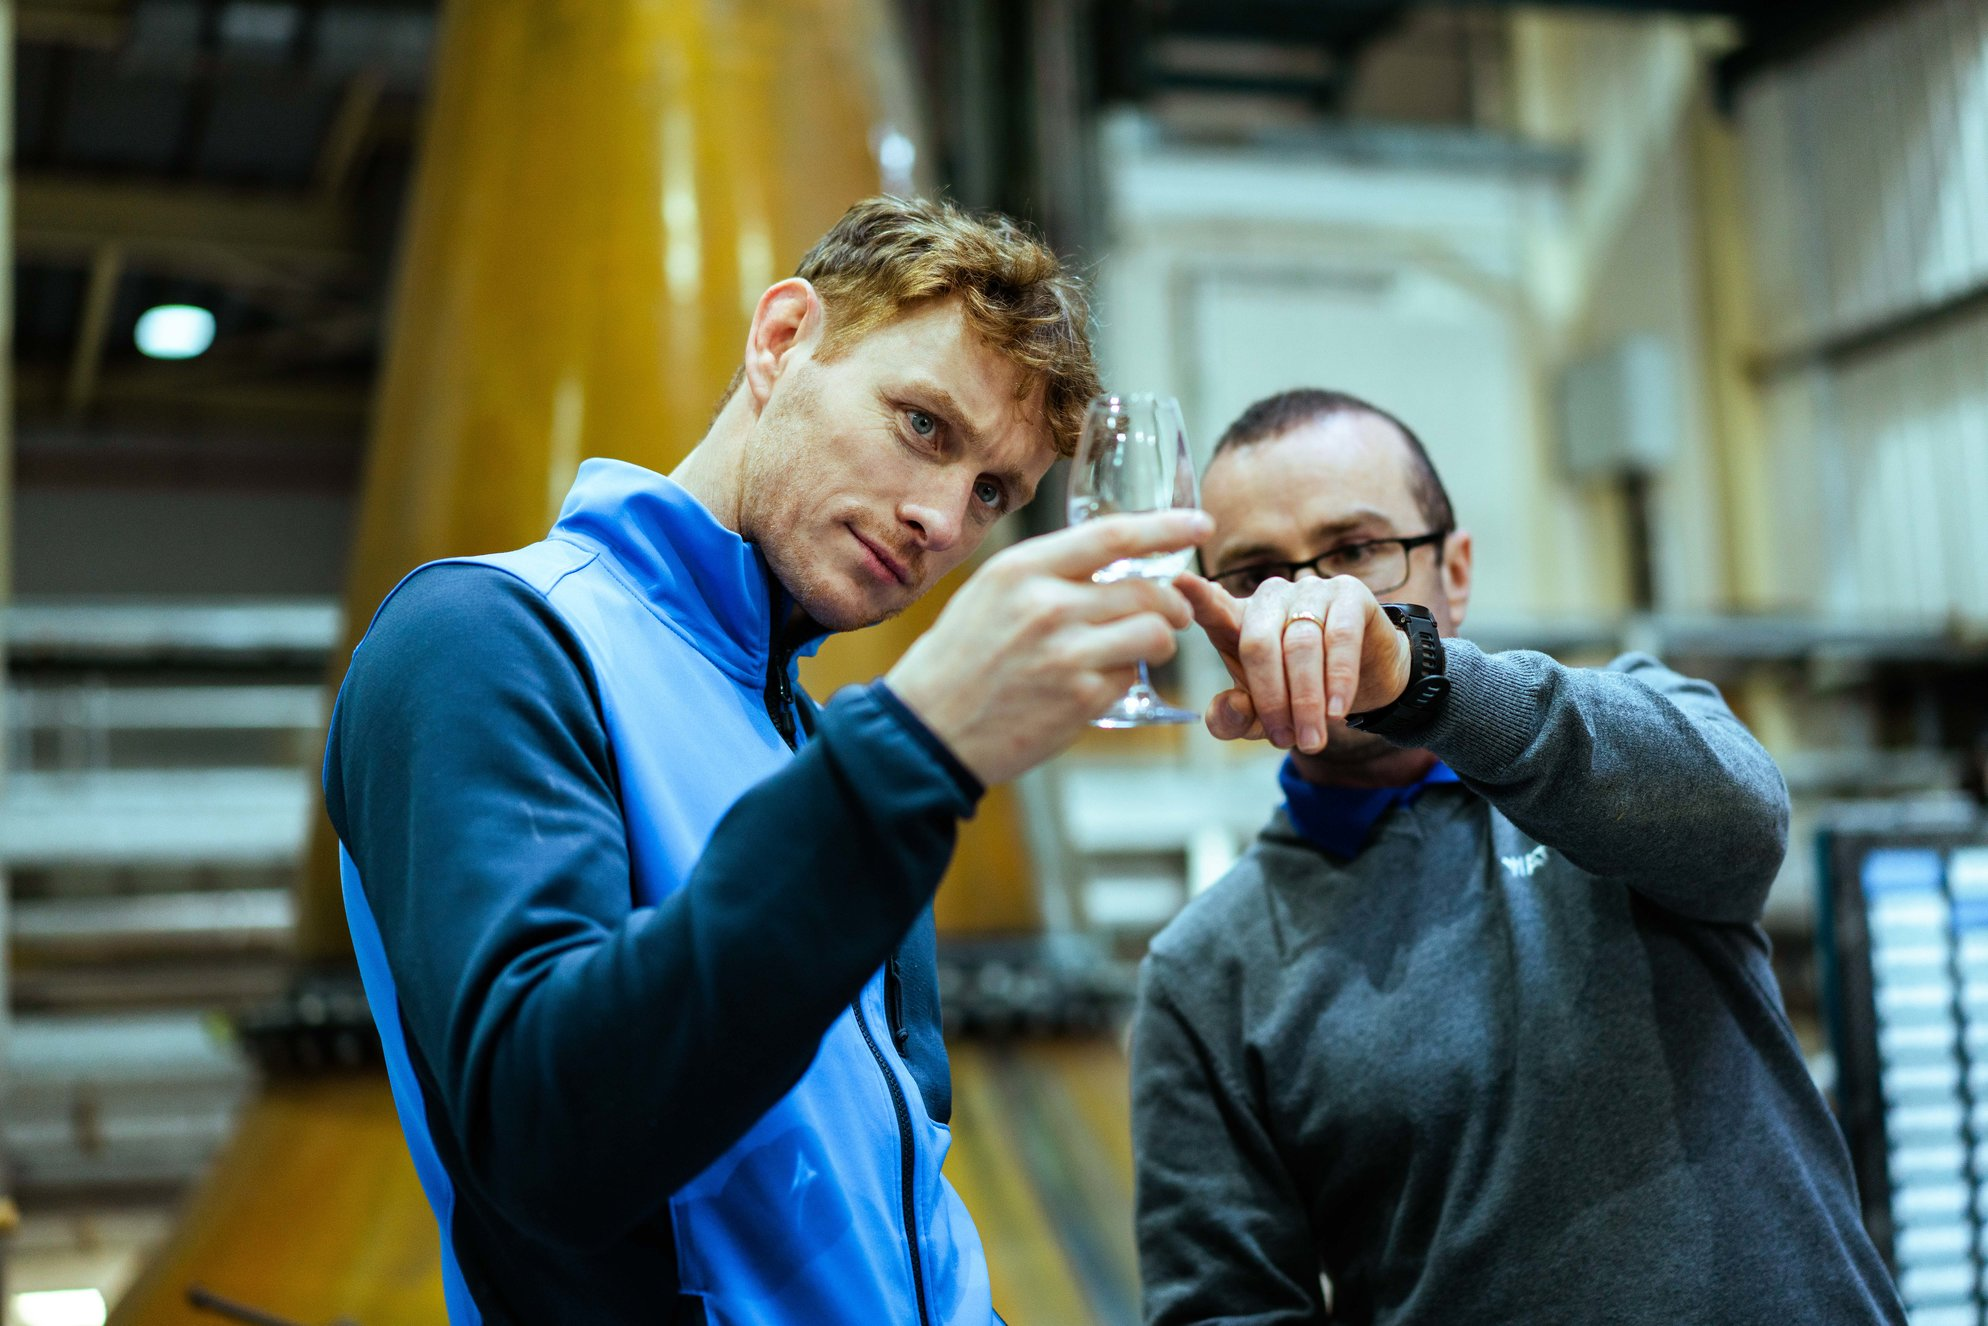 rsz_waterforddistillery-official-imagery-pr-sowing-web-13